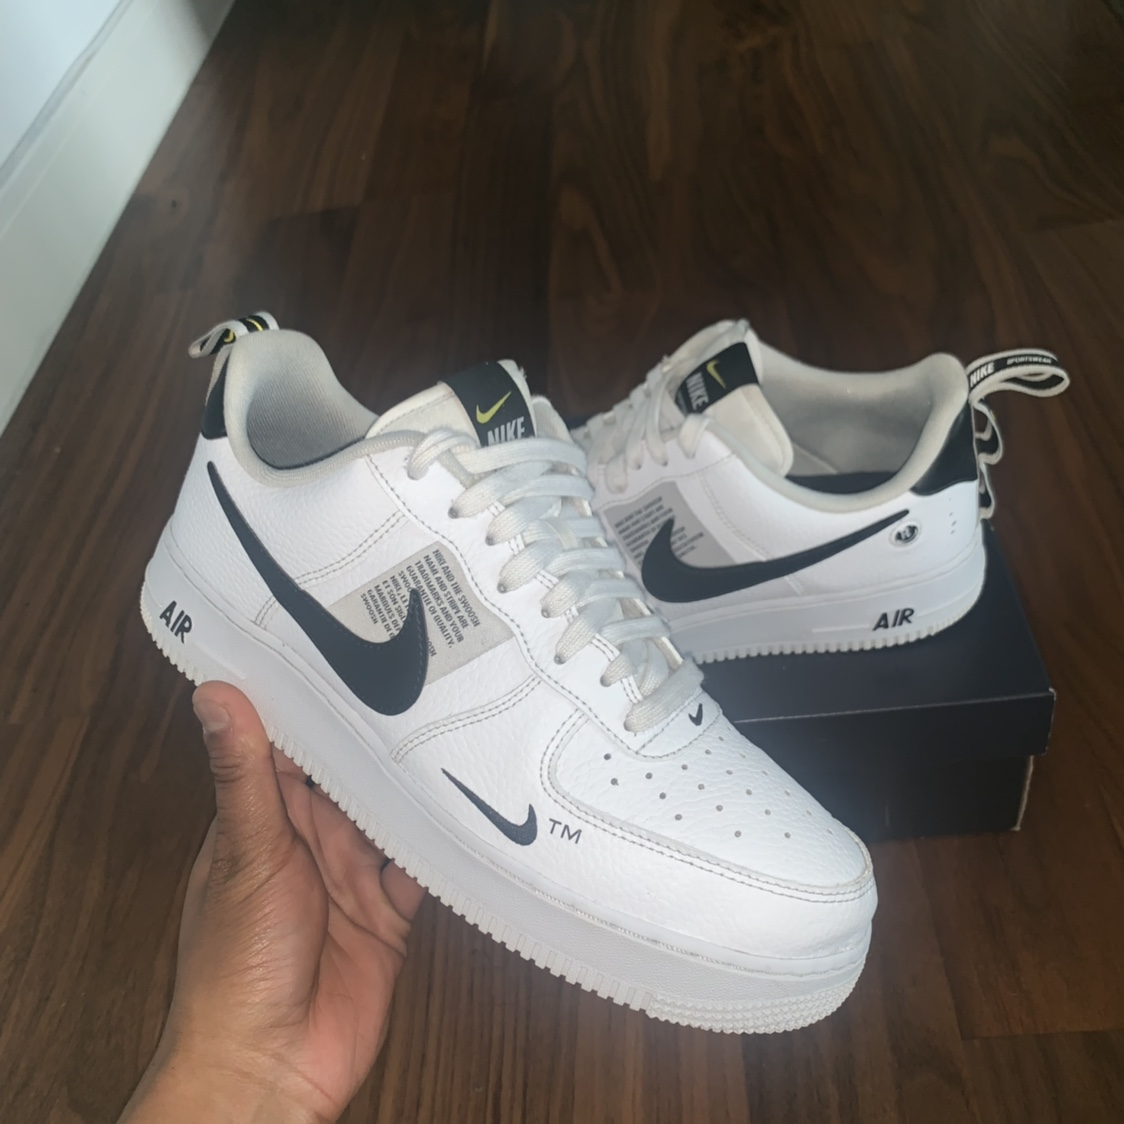 Air Force 1 Utility '07 trainers. Literately go with Depop